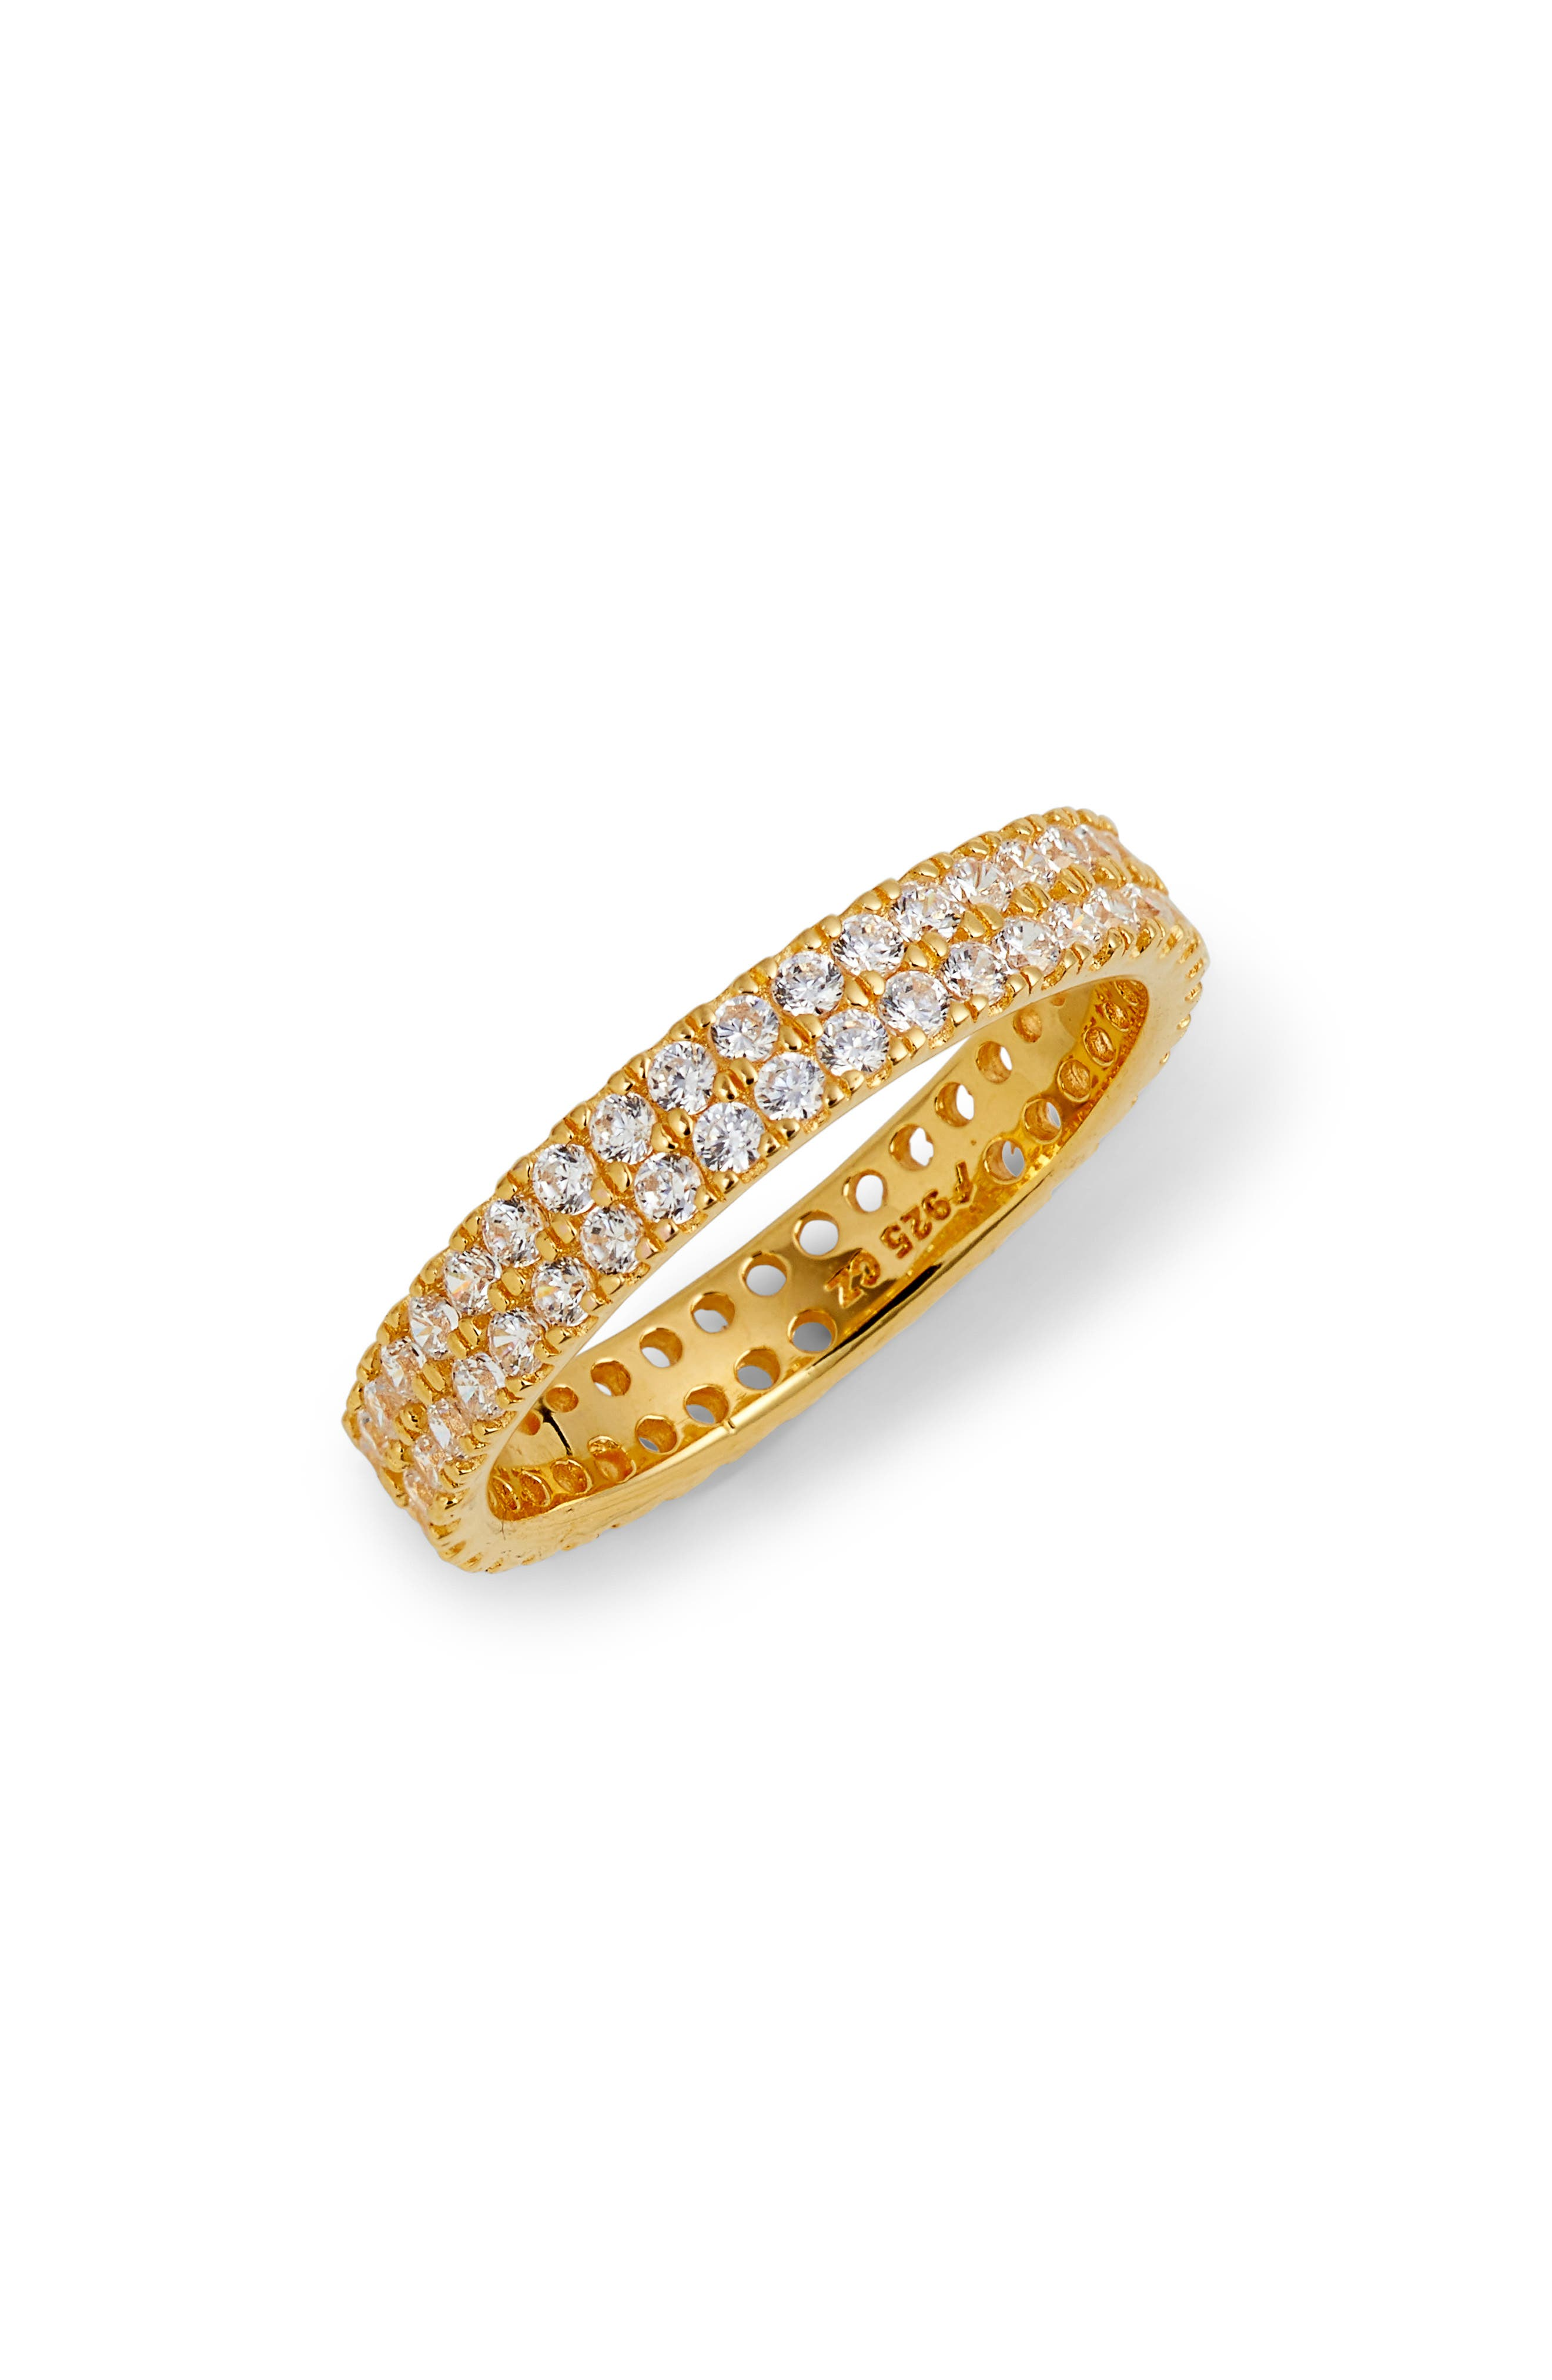 Double Eternity Band Ring,                         Main,                         color, Gold